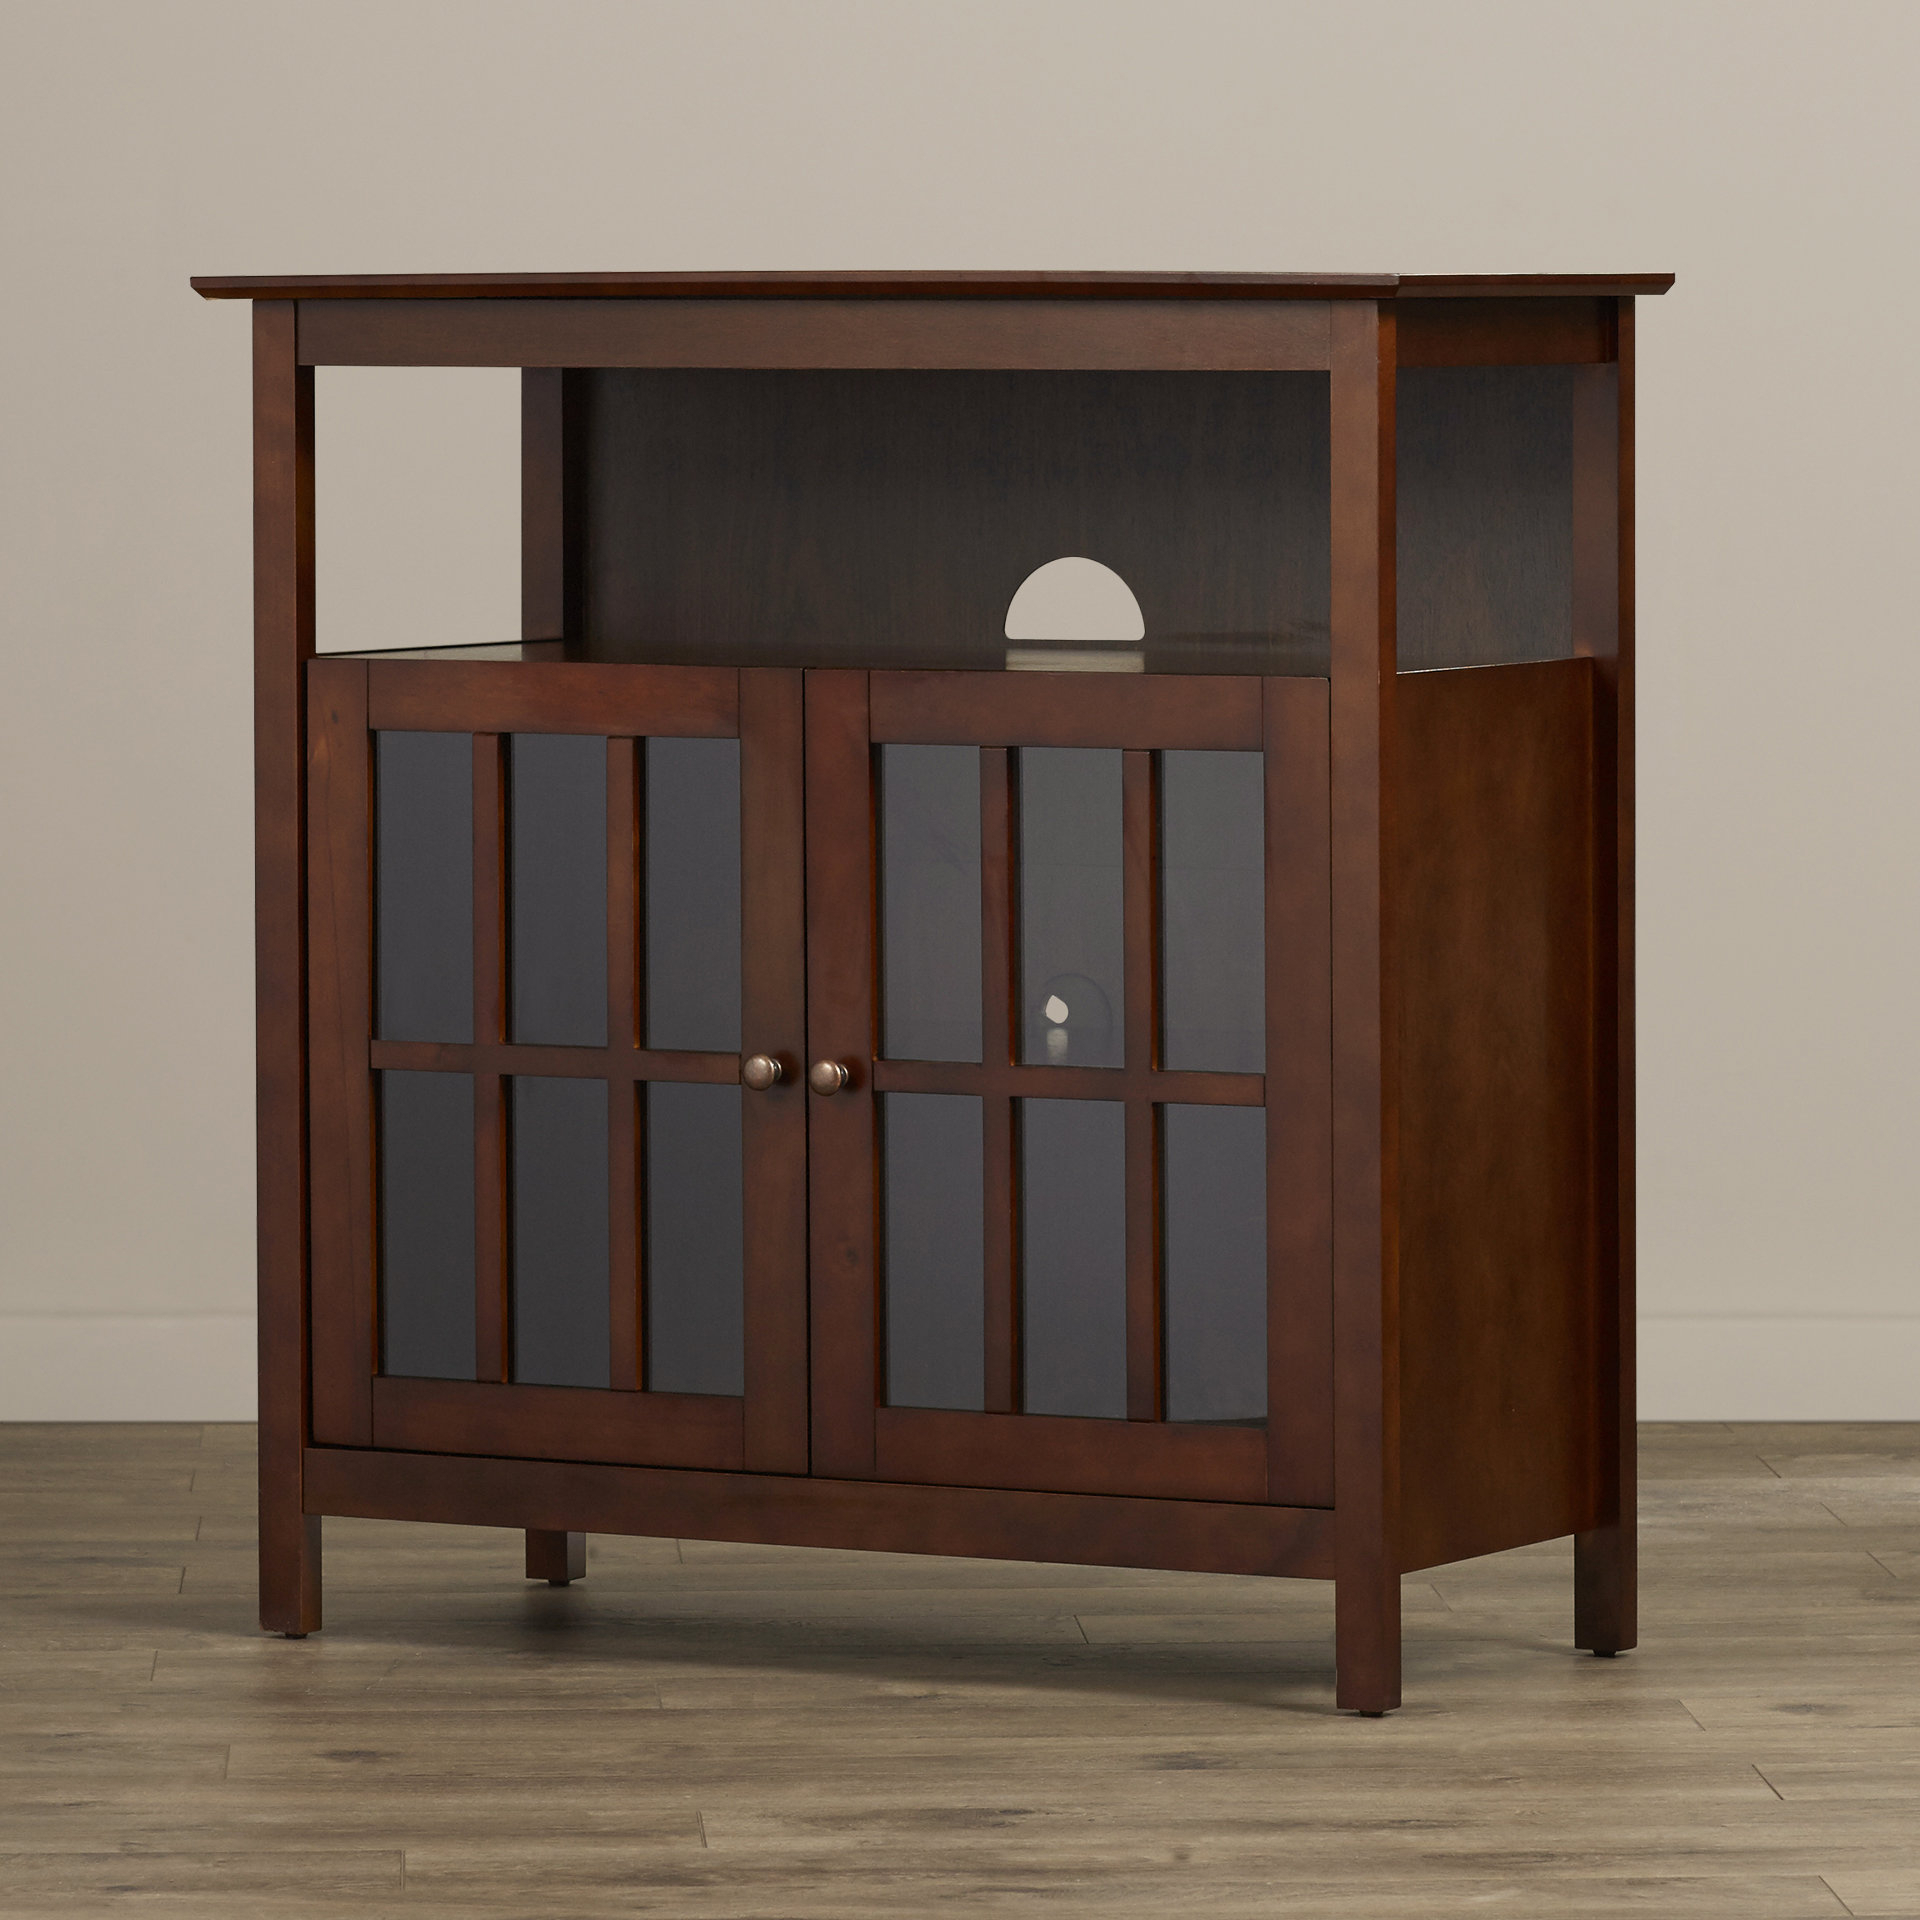 Tv Stands & Entertainment Centers You'll Love | Wayfair Intended For Sinclair Blue 64 Inch Tv Stands (View 26 of 30)